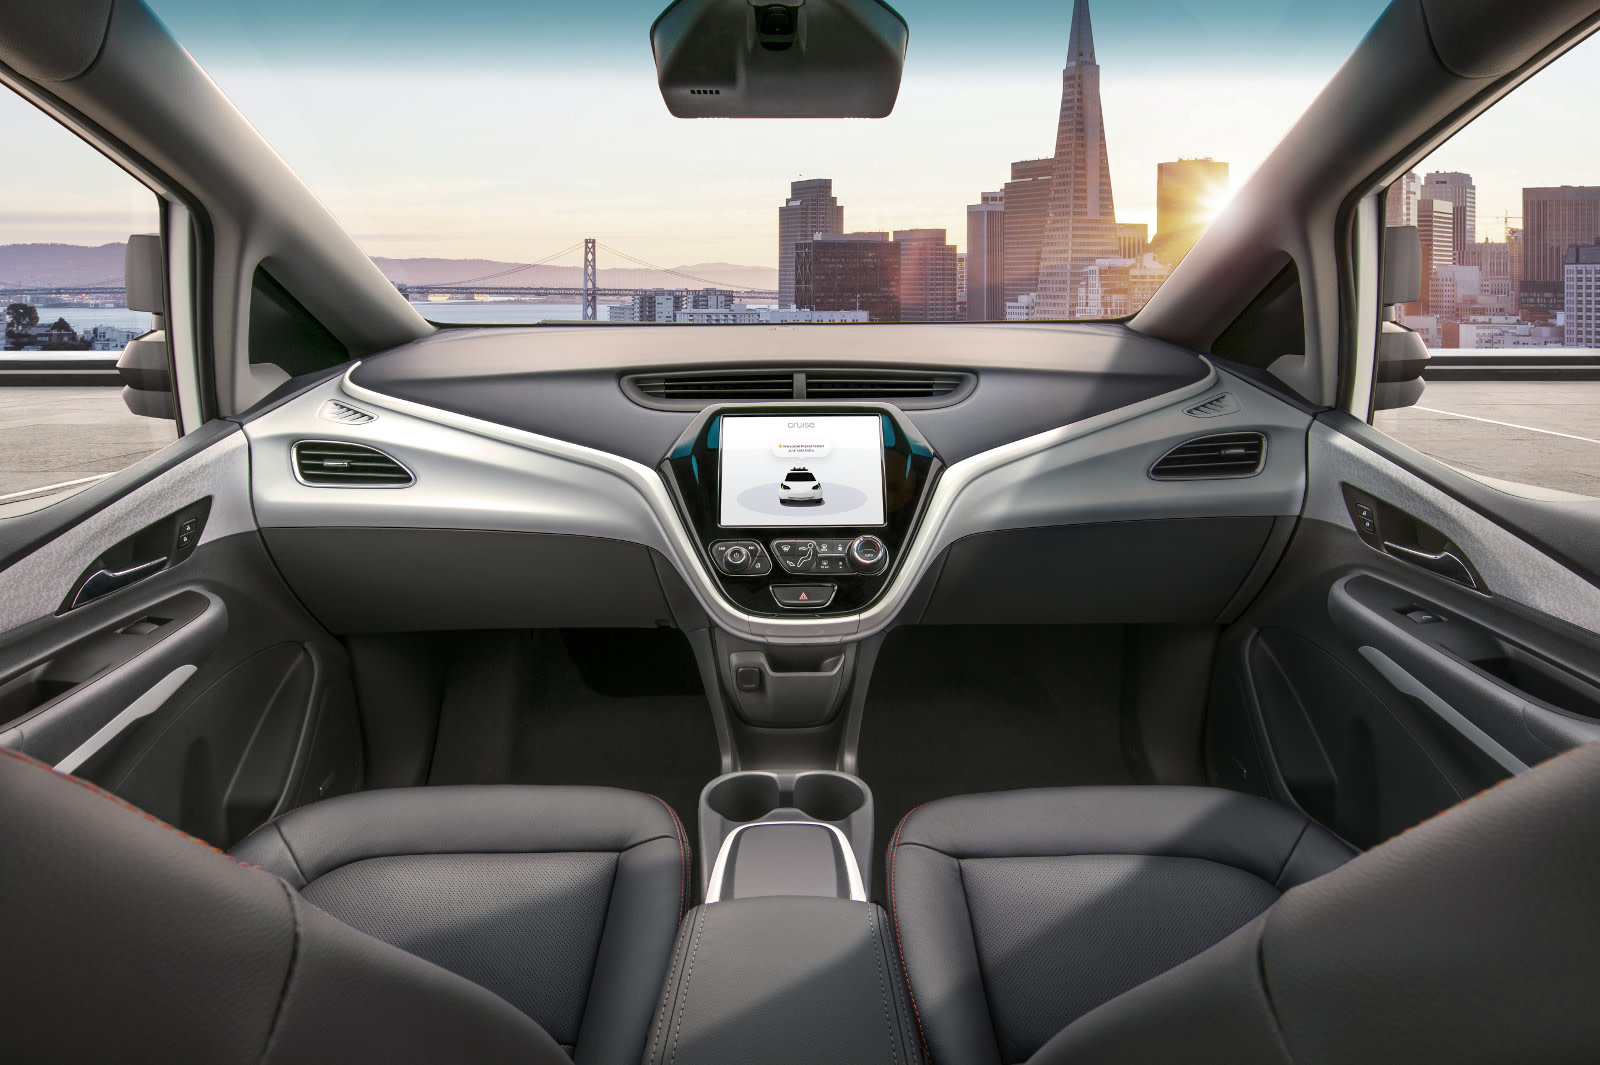 GM Plans To Release Cars With No Steering Wheel In - Car sign with namescould always name any car just by looking at it i could never